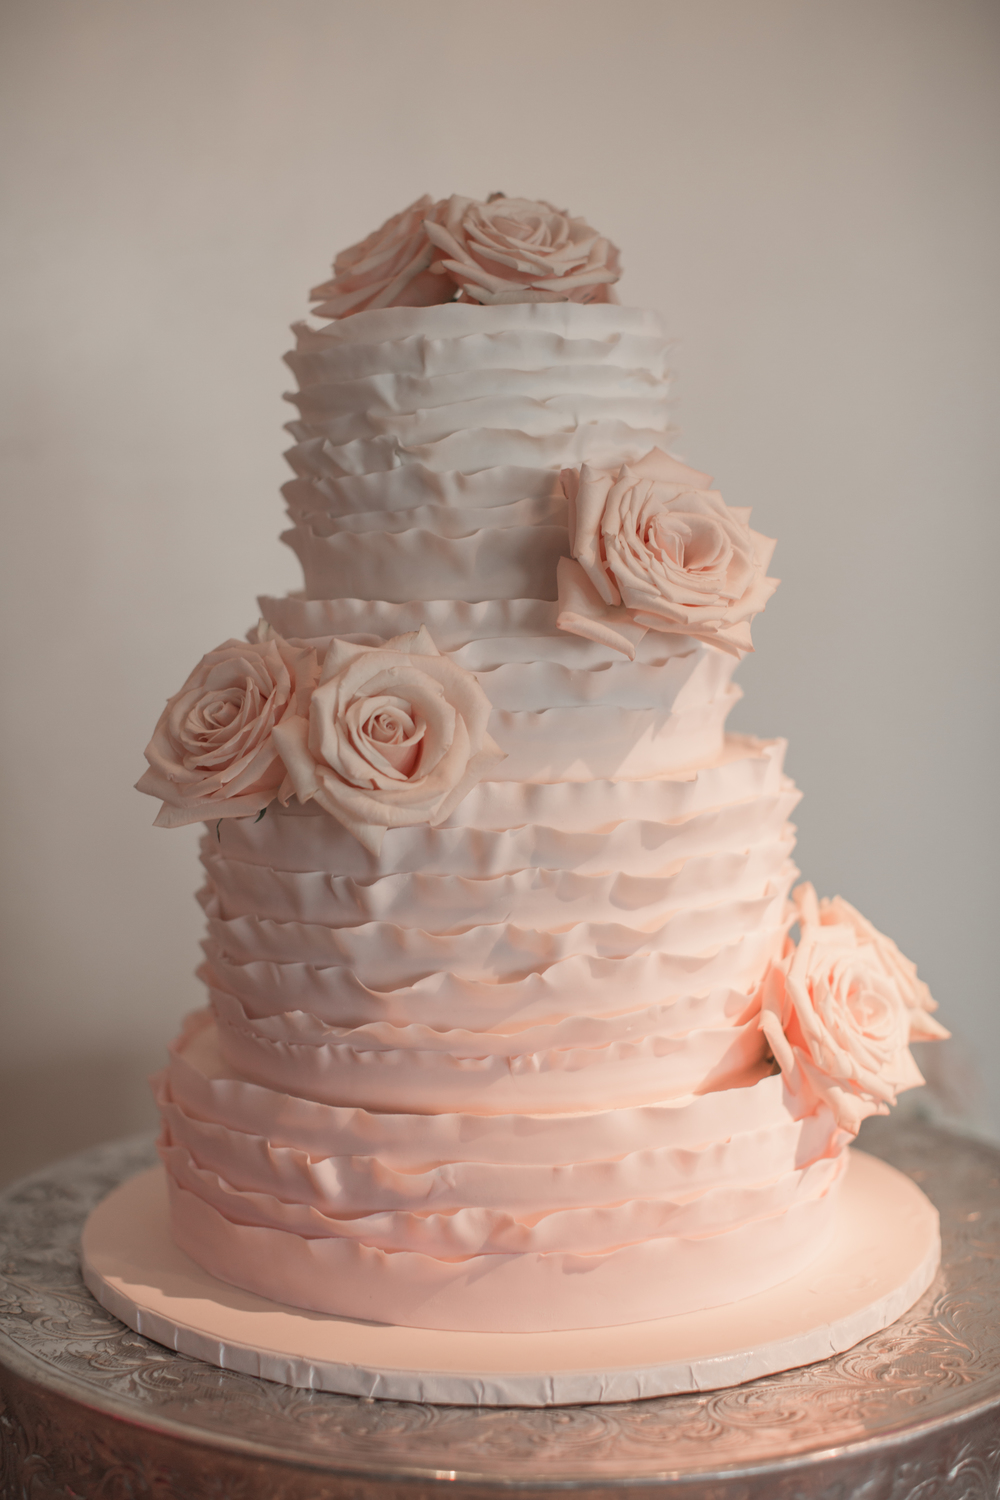 peach white and silver wedding cake andrea eppolito events las vegas wedding planner 2014 18154